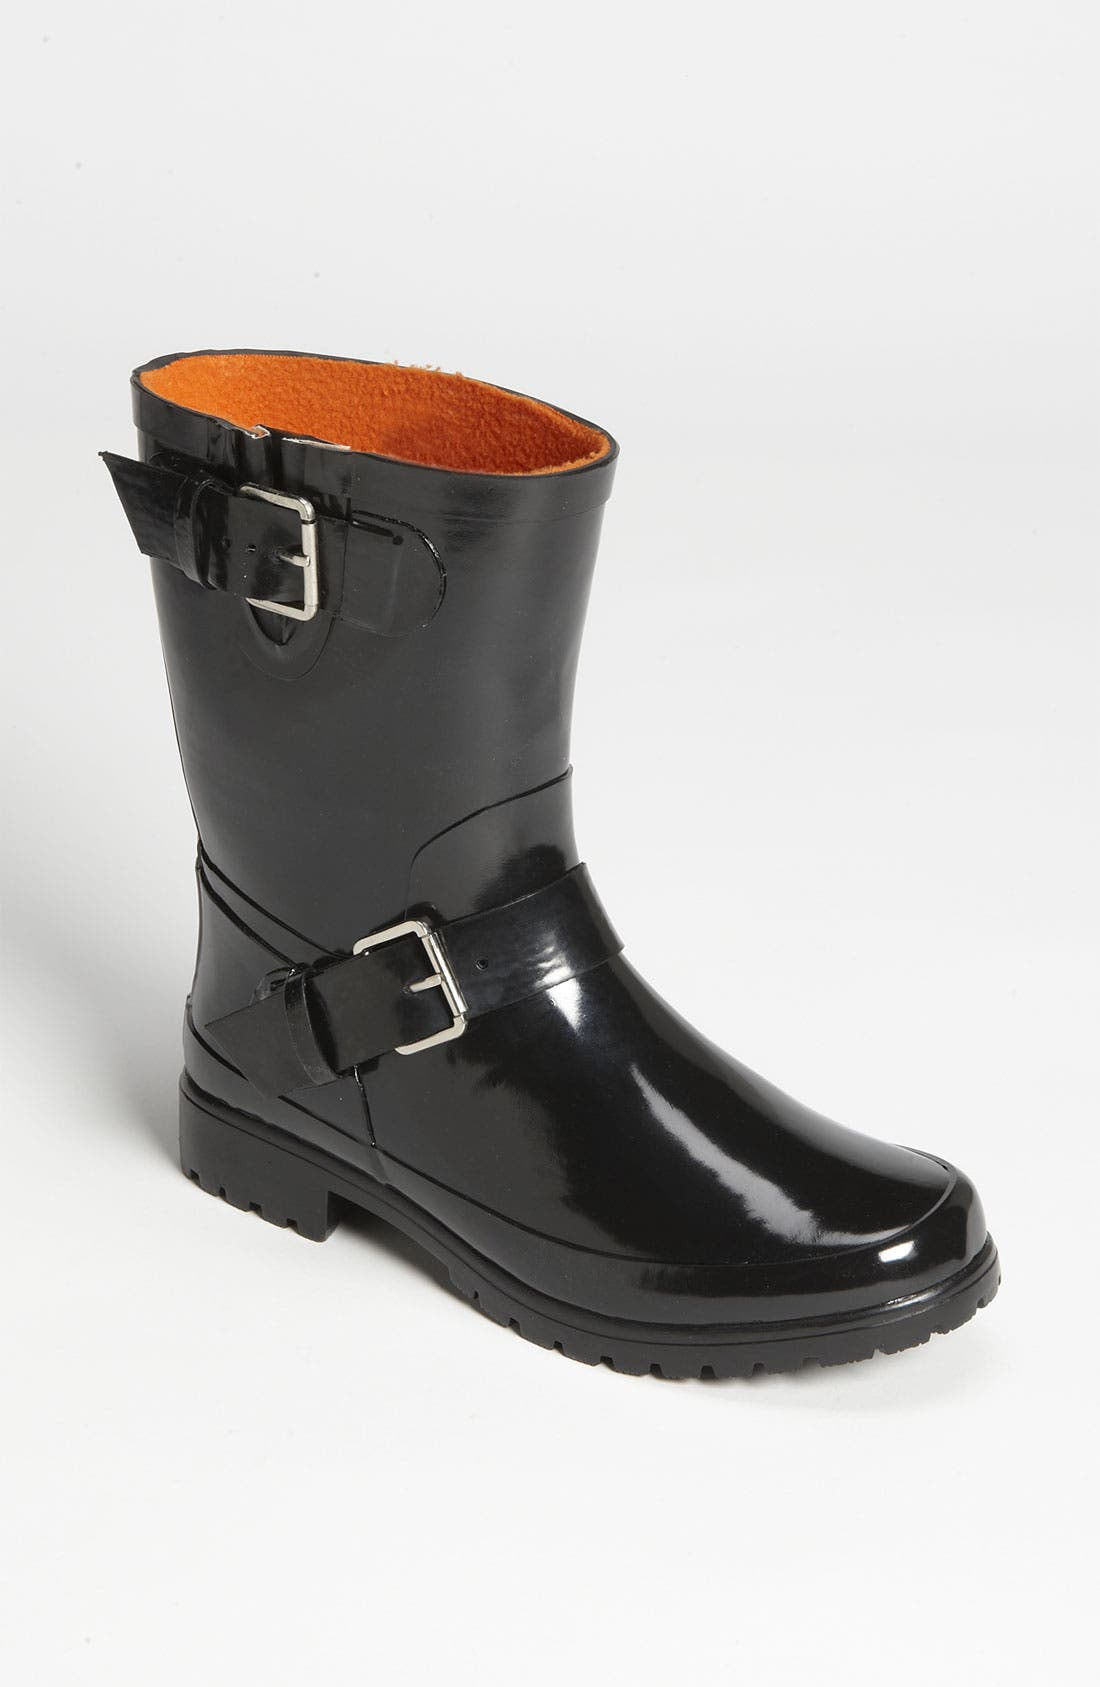 Alternate Image 1 Selected - Sperry Top-Sider® 'Falcon' Rain Boot